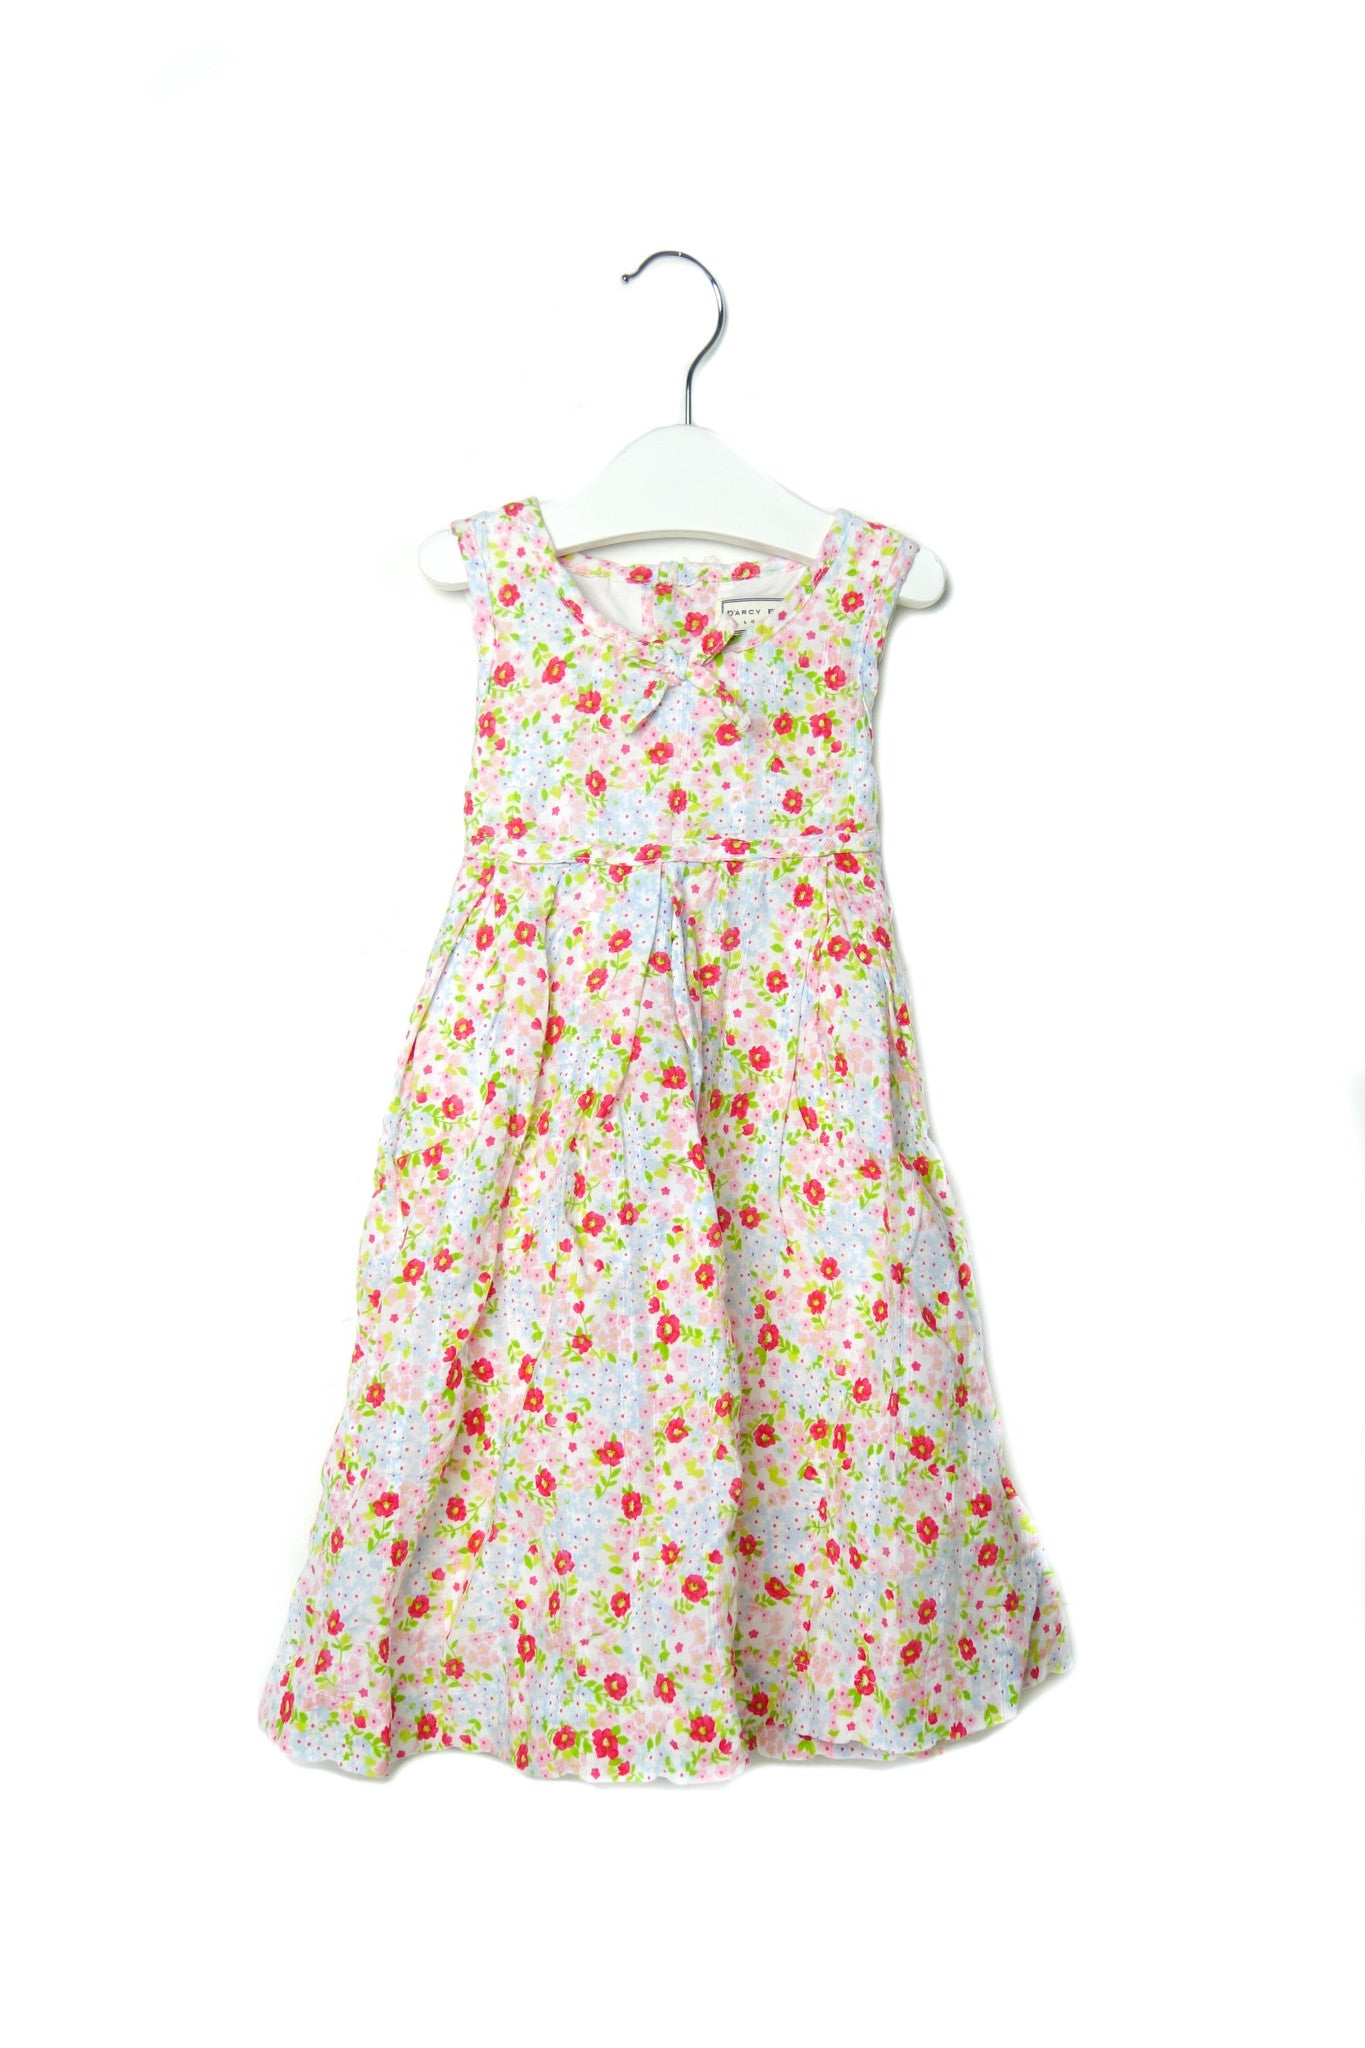 10001481 Darcy Brown Baby~Dress 18M at Retykle